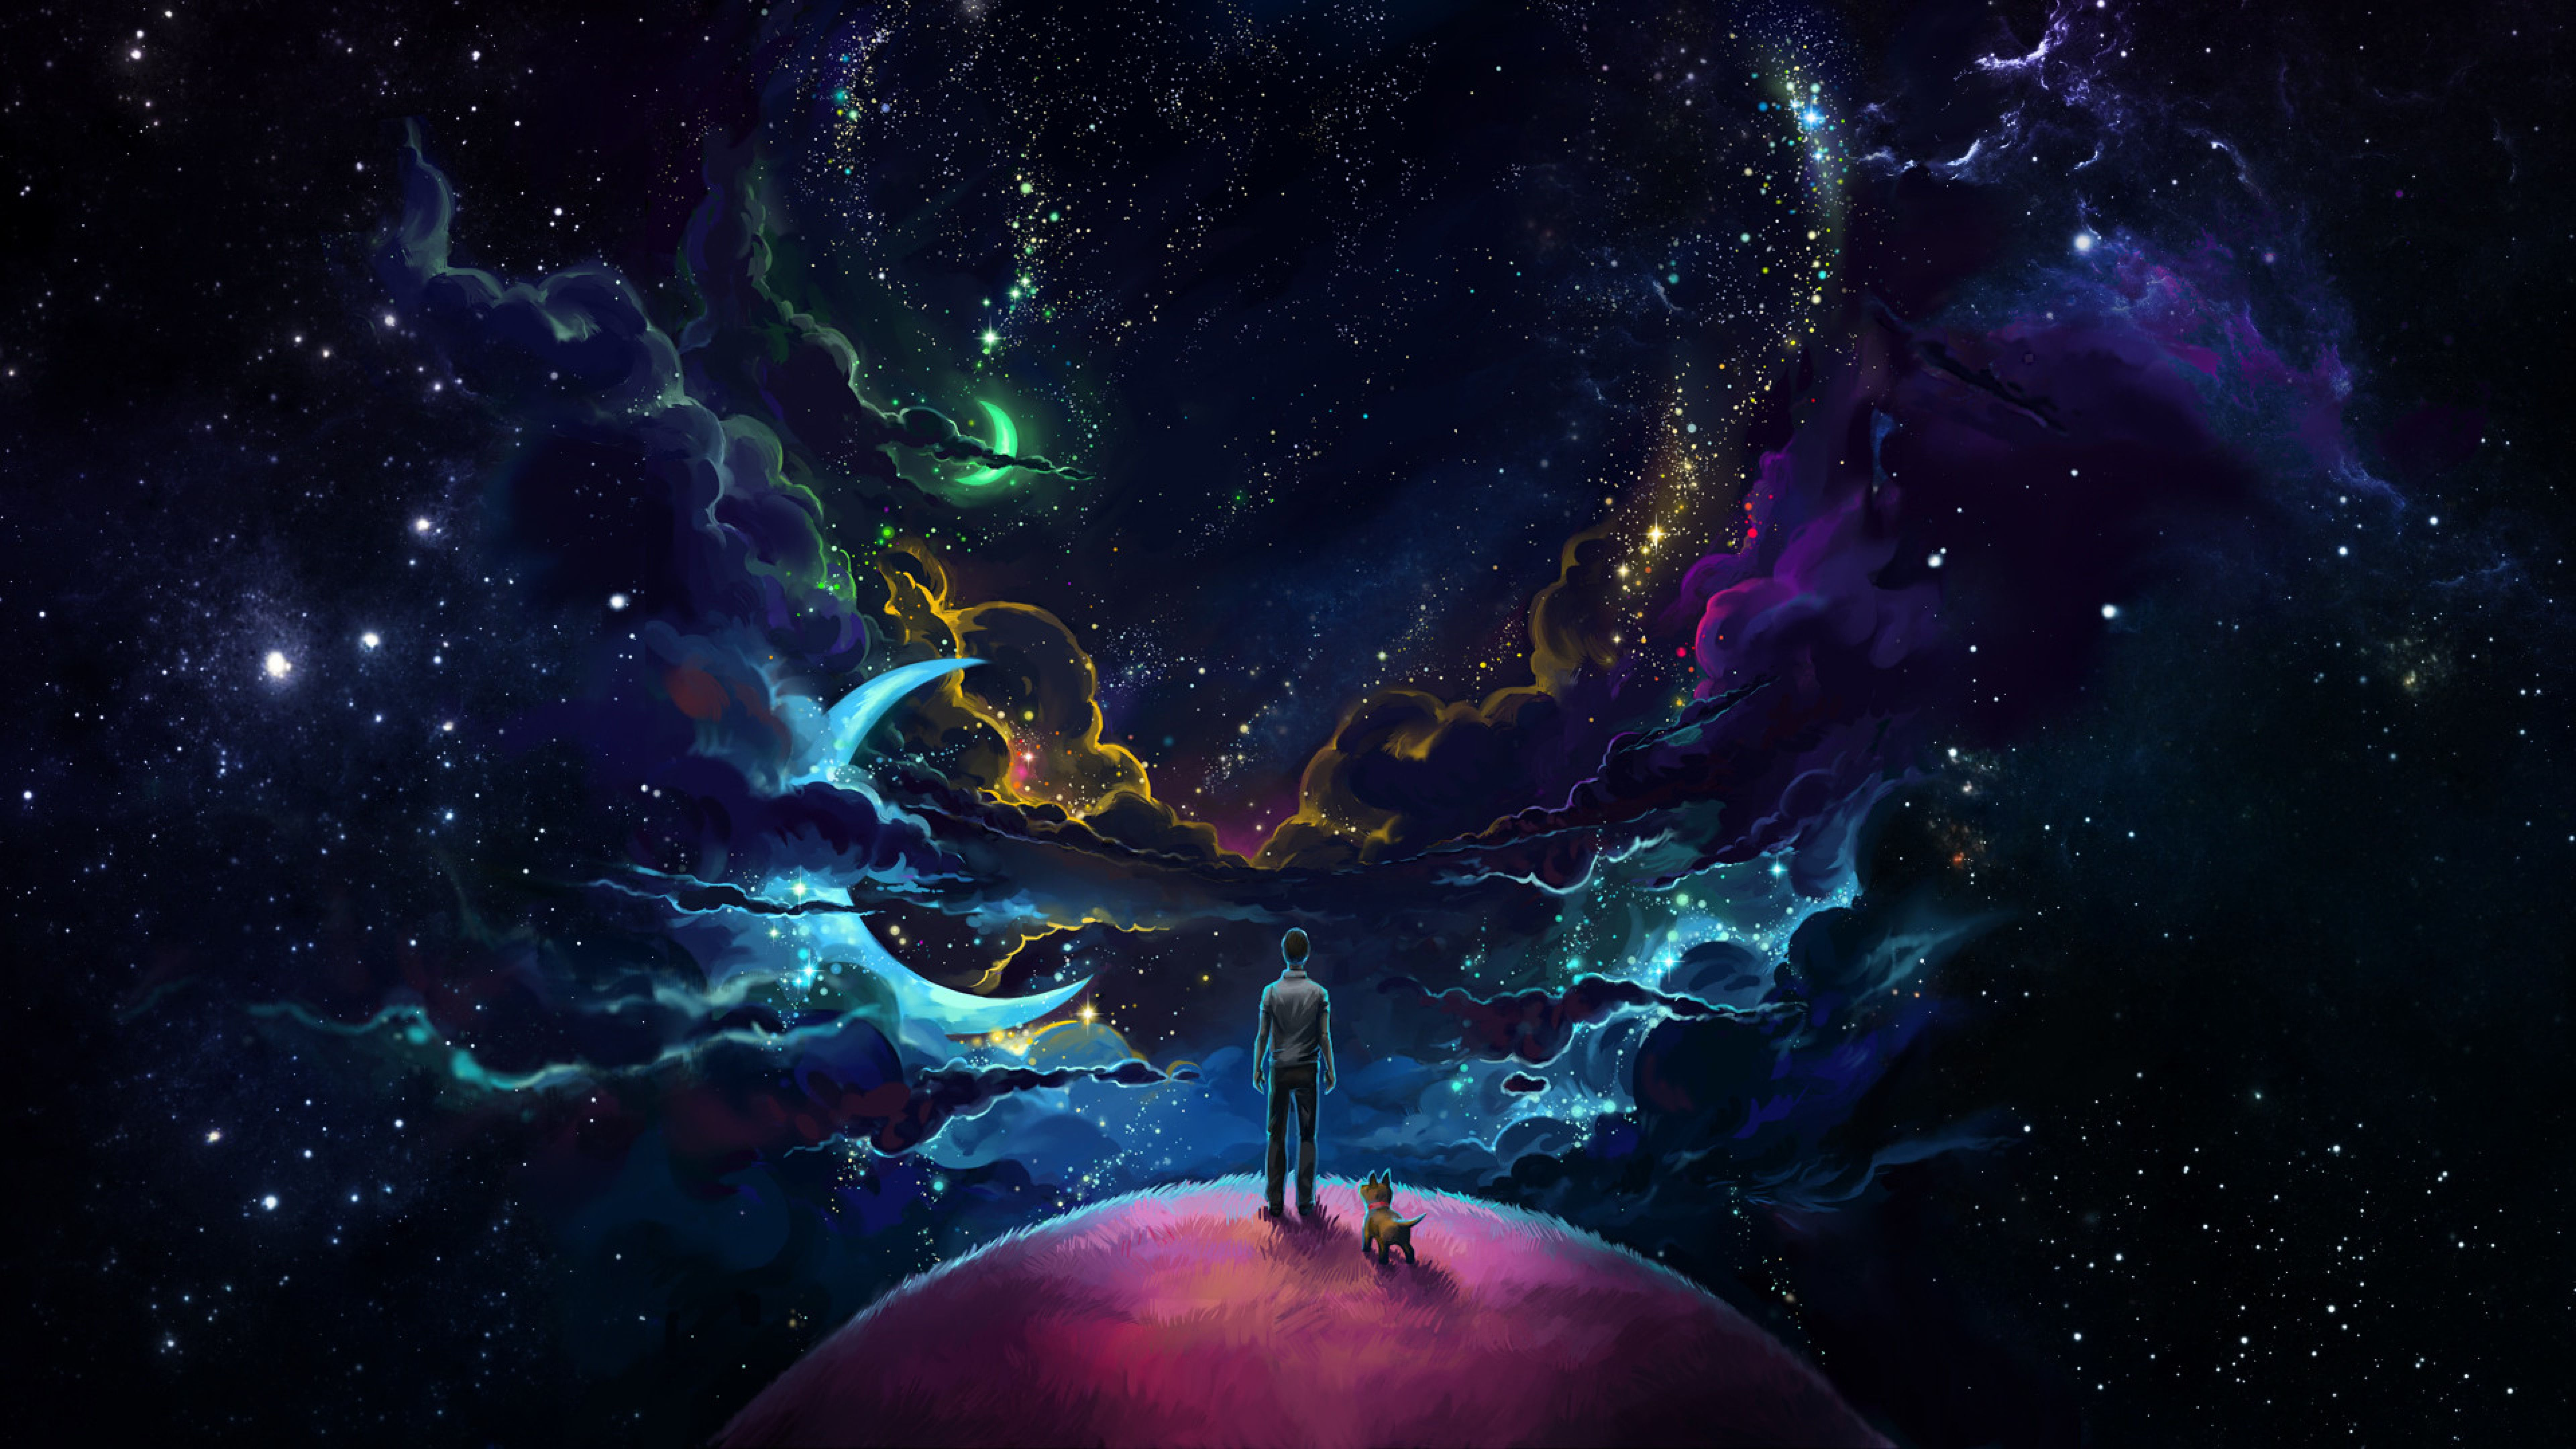 7680x4320 Download Man And Dog And Neon Space 7680x4320 Resolution, Full HD ...